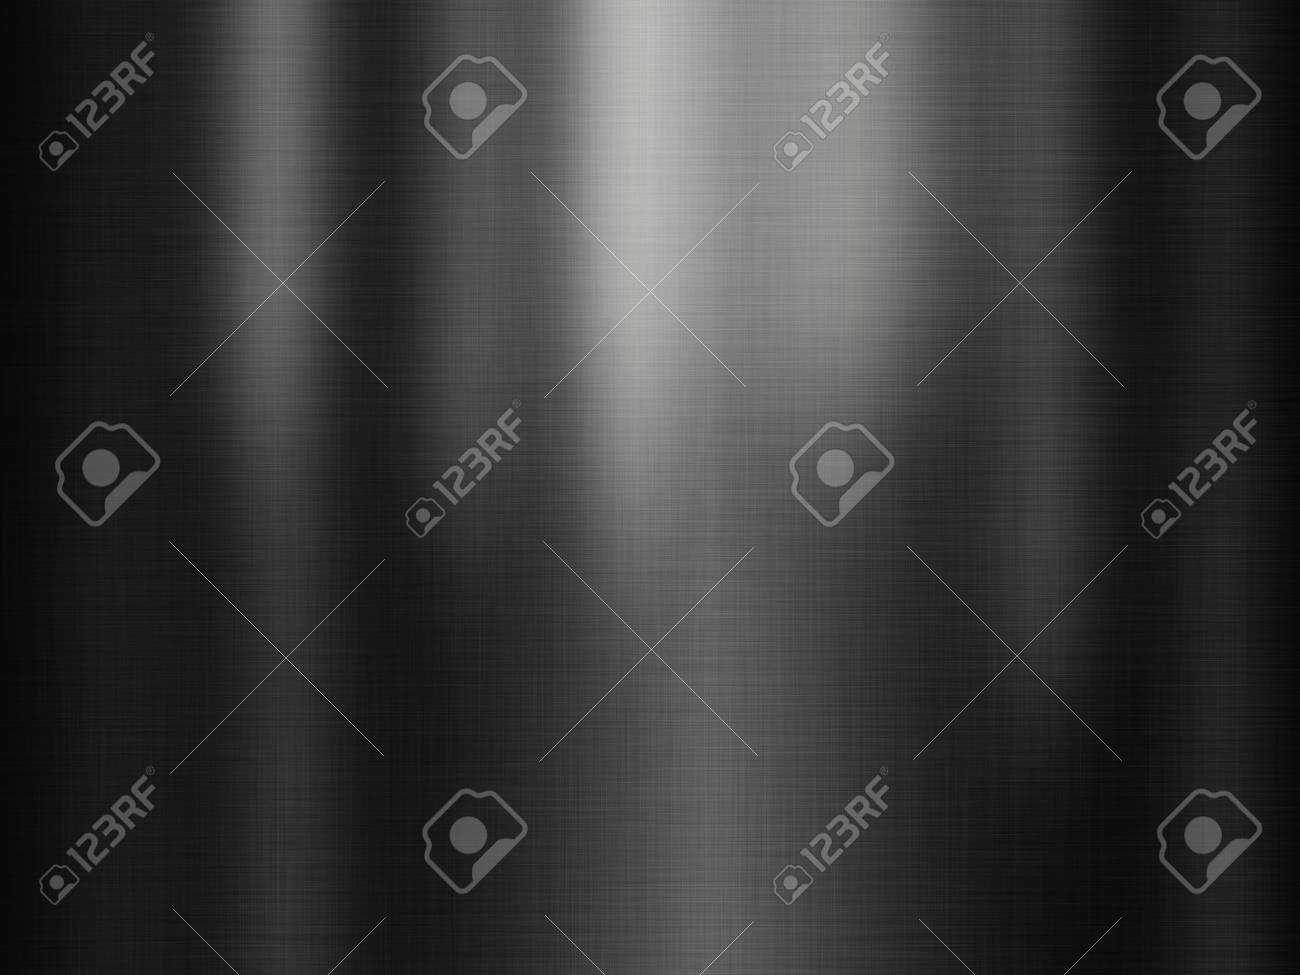 Stainless steel texture or metal texture background Banque d'images - 75076763